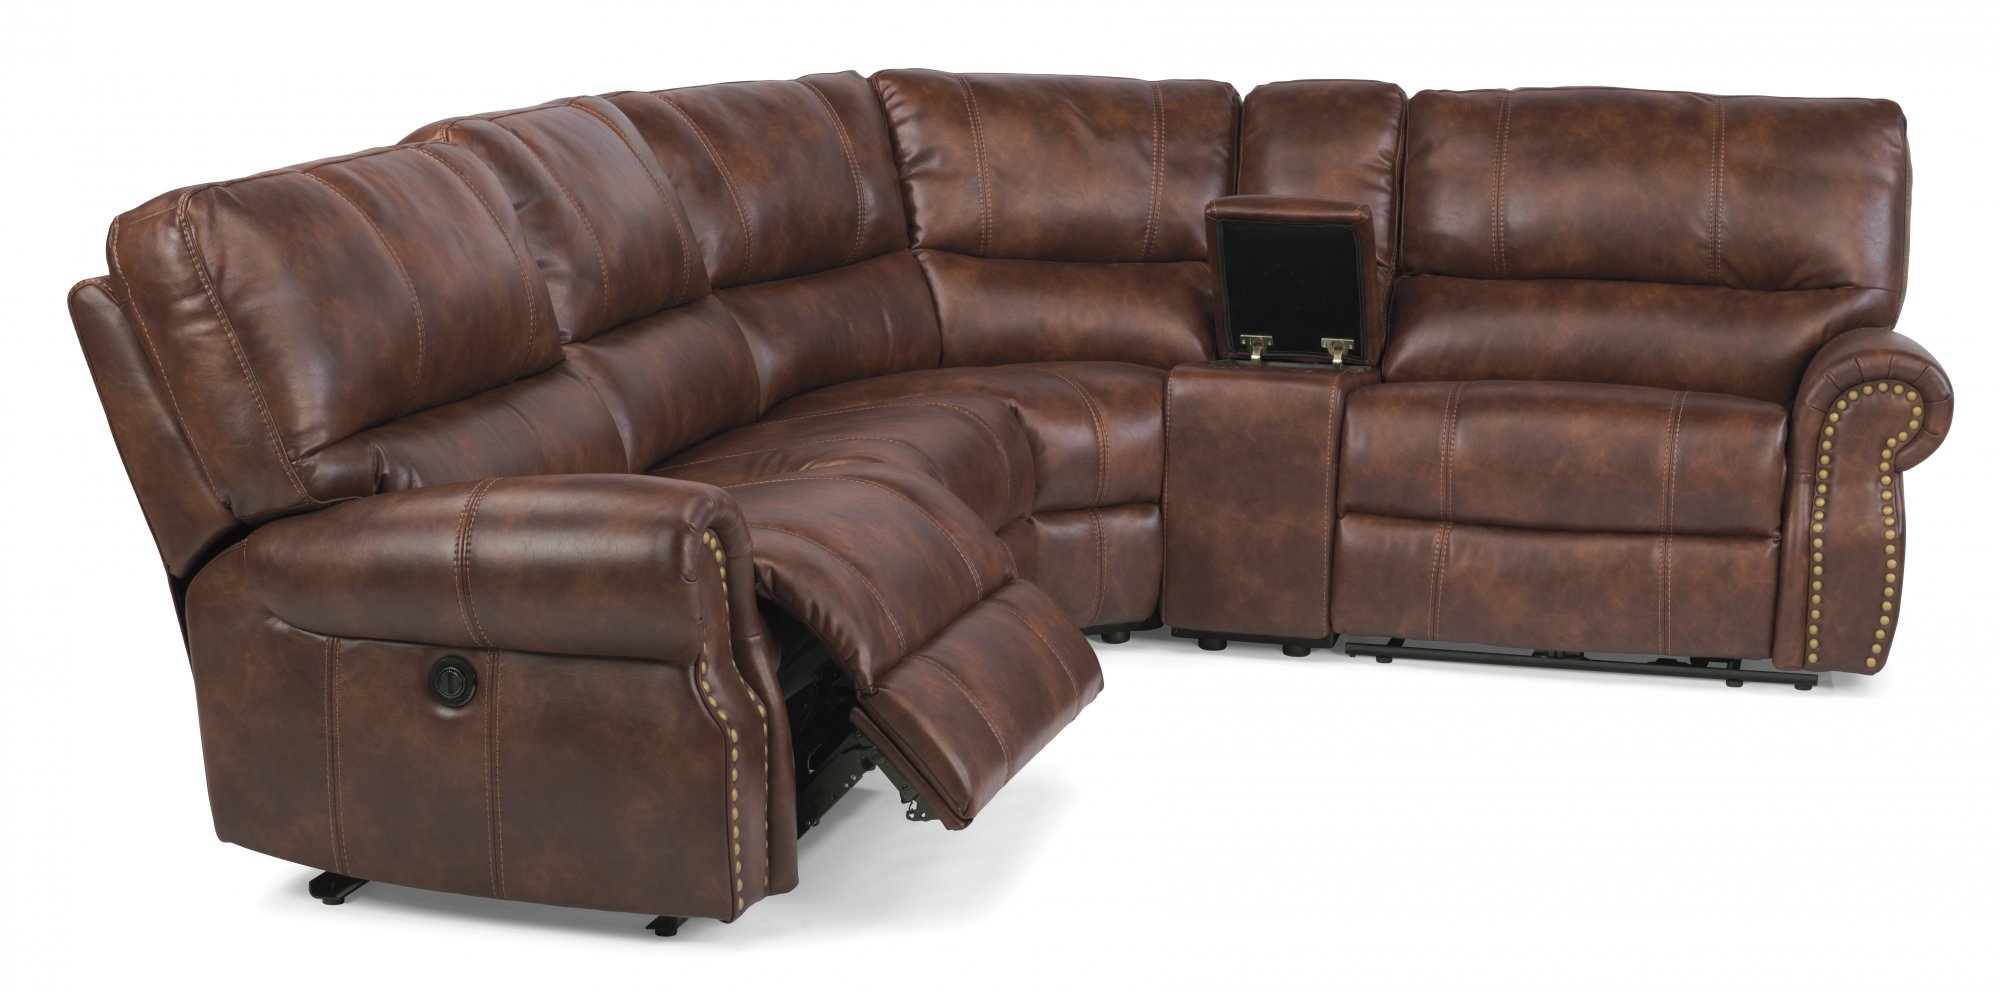 Sectional Couches and Sofas